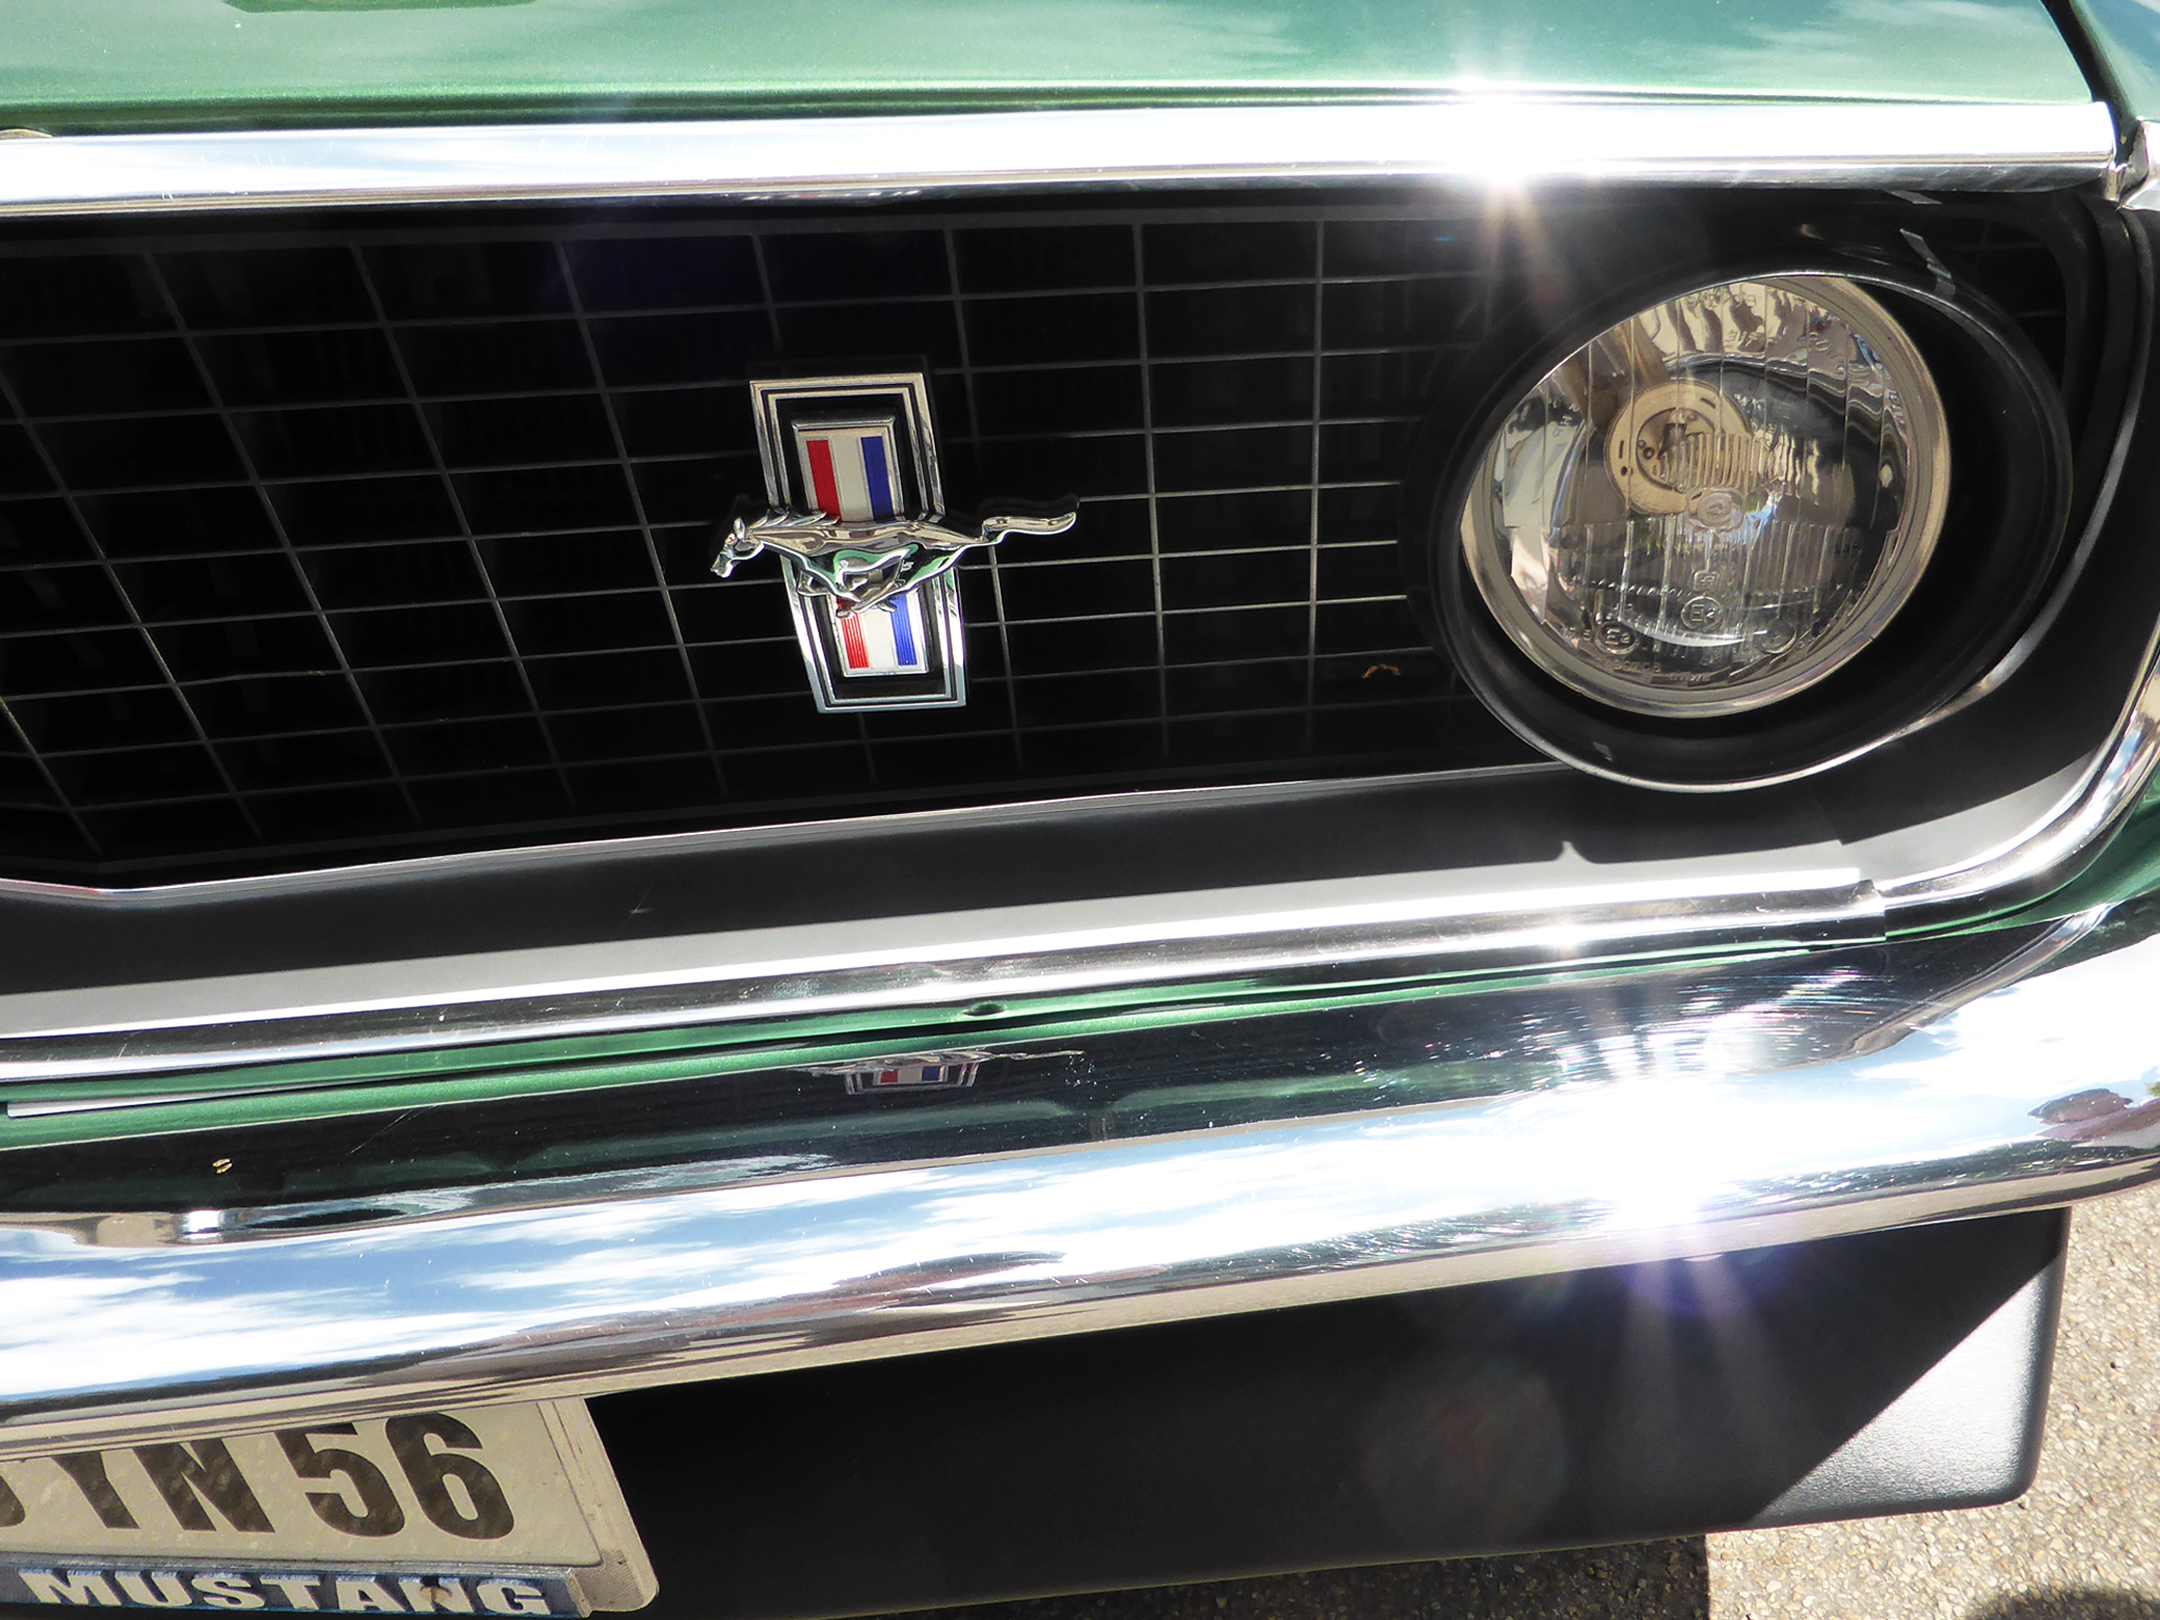 Ford Mustang Mach 1 - 1969 - front zoom - US Cars and Bikes 2017 - Photo by ELJ